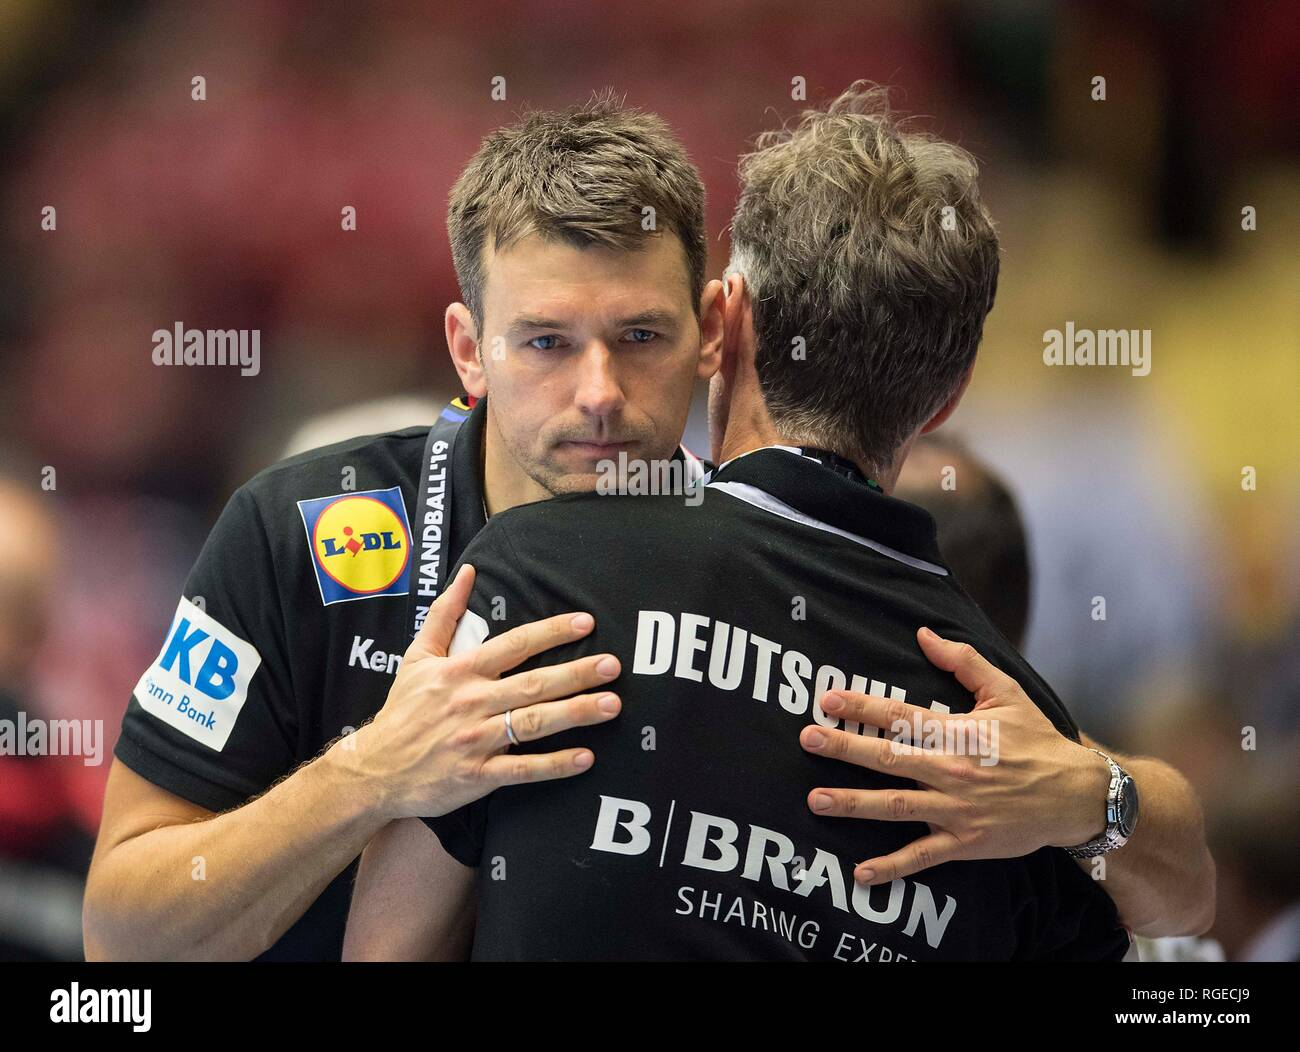 coach Christian PROKOP (GER) disappointed after the match, match for 3rd place, Germany (GER) - France (FRA), on 27.01.2019 in Herning/Denmark Handball World Cup 2019, from 10.01. - 27.01.2019 in Germany/Denmark. | usage worldwide Stock Photo